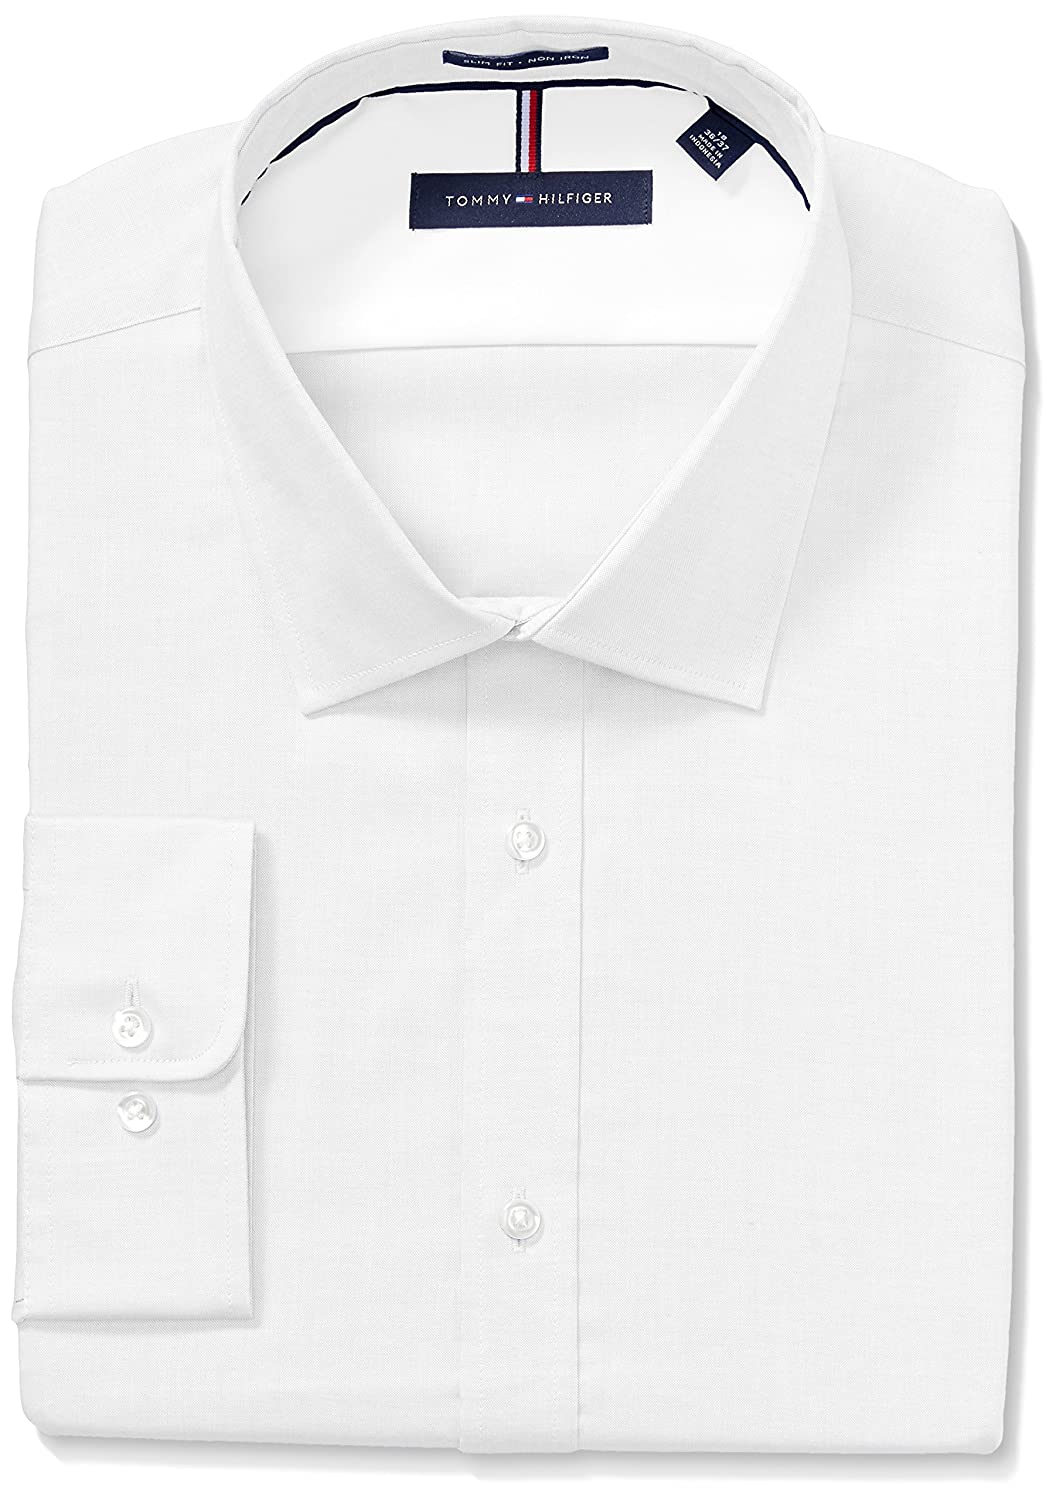 7d19e791 Online Cheap wholesale Tommy Hilfiger Mens Dress Shirts Non Iron Slim Fit  Solid Spread Collar Dress Shirts Suppliers